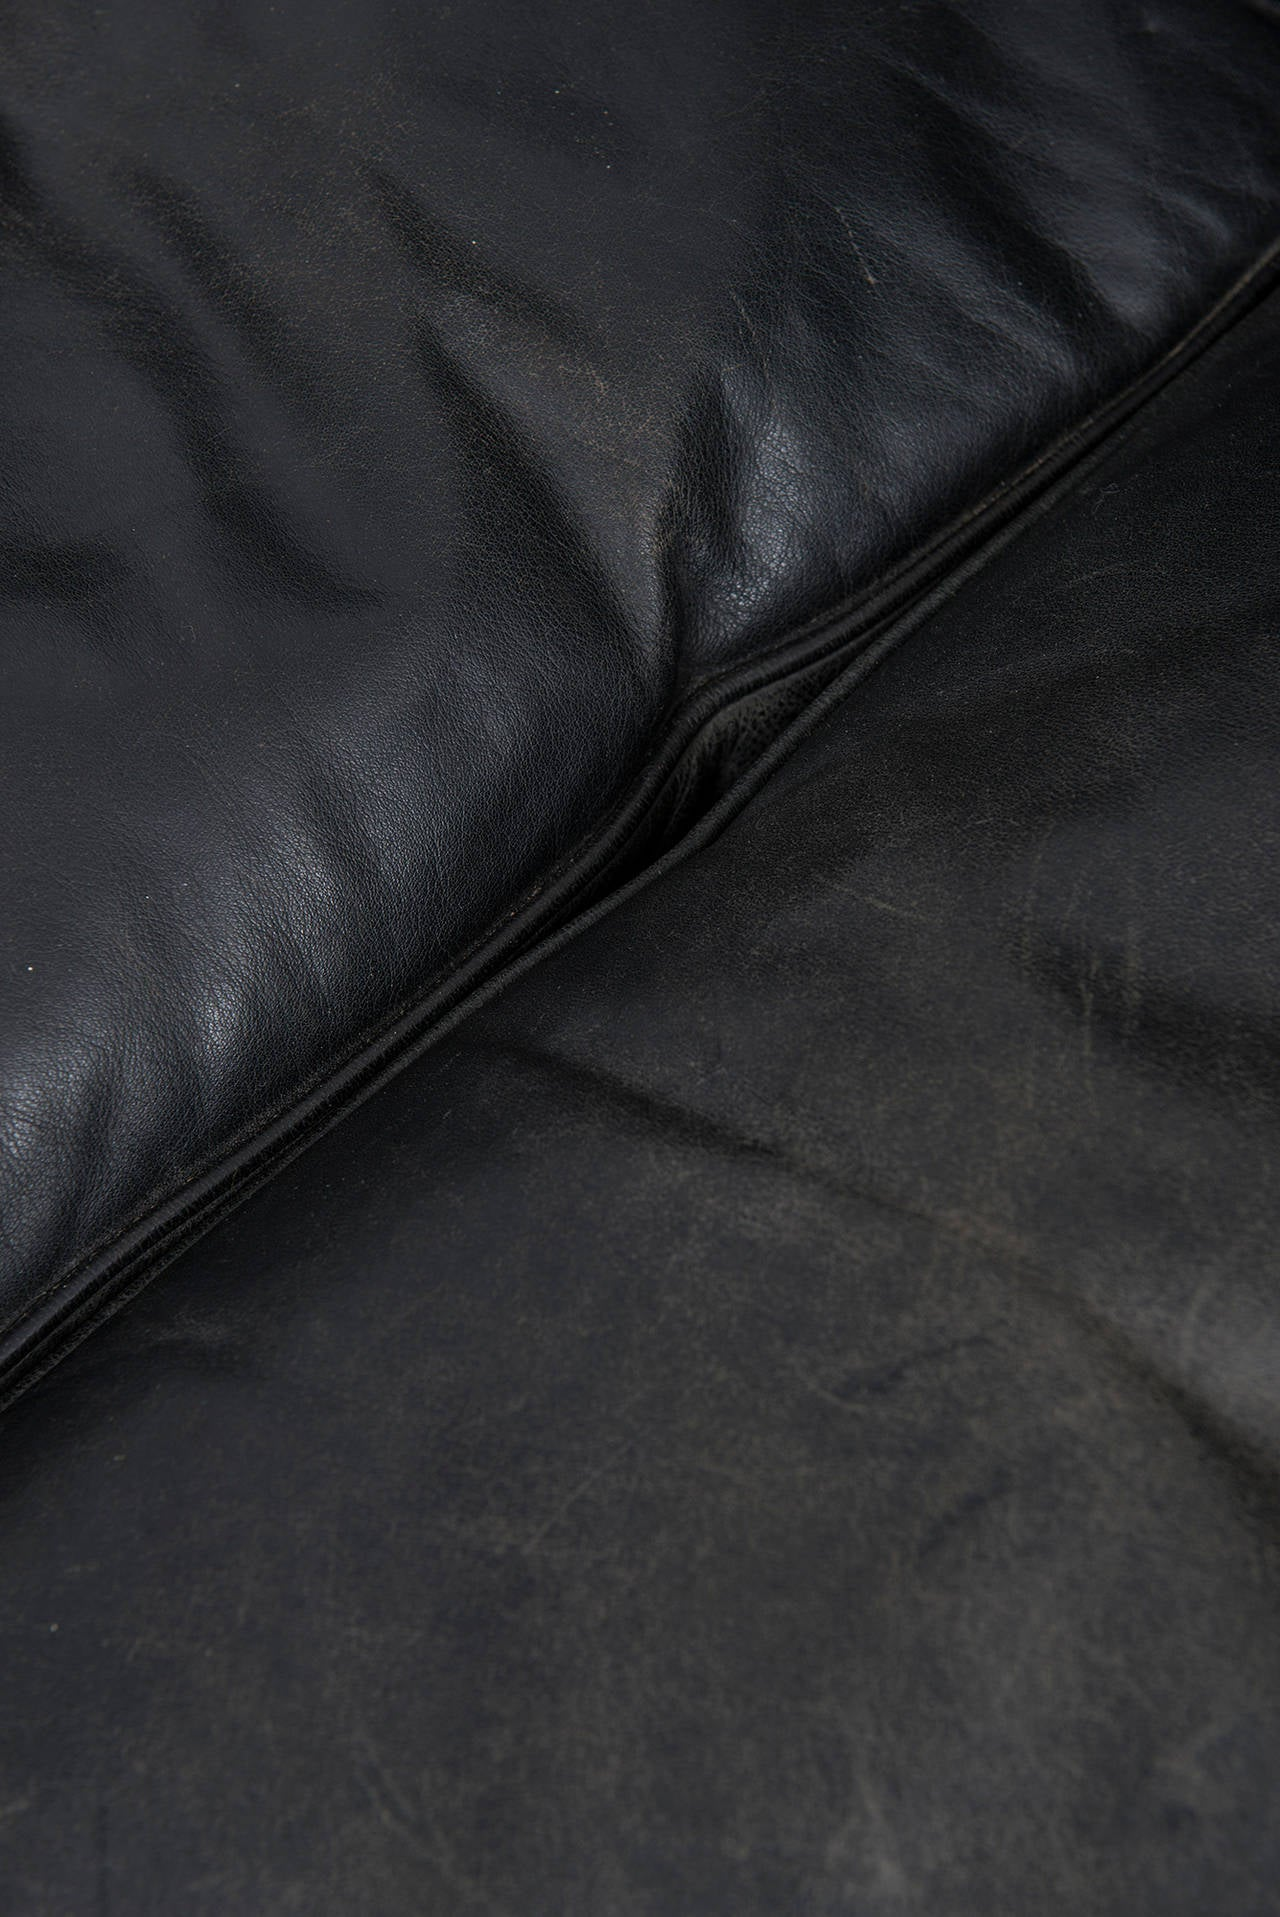 Ib Kofod-Larsen leather sofa by OPE in Sweden For Sale 1